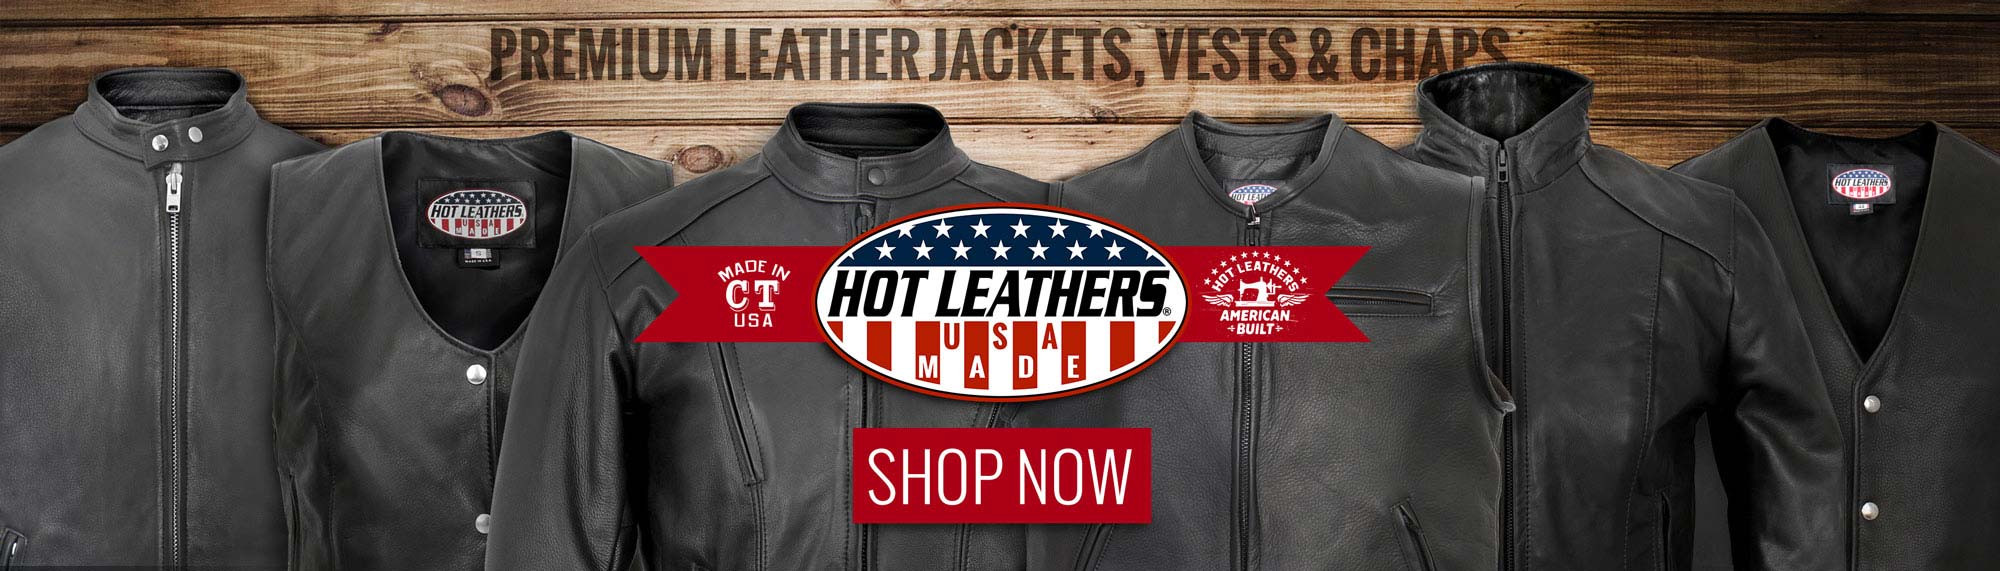 2017-july-usa-leather-banner.jpg